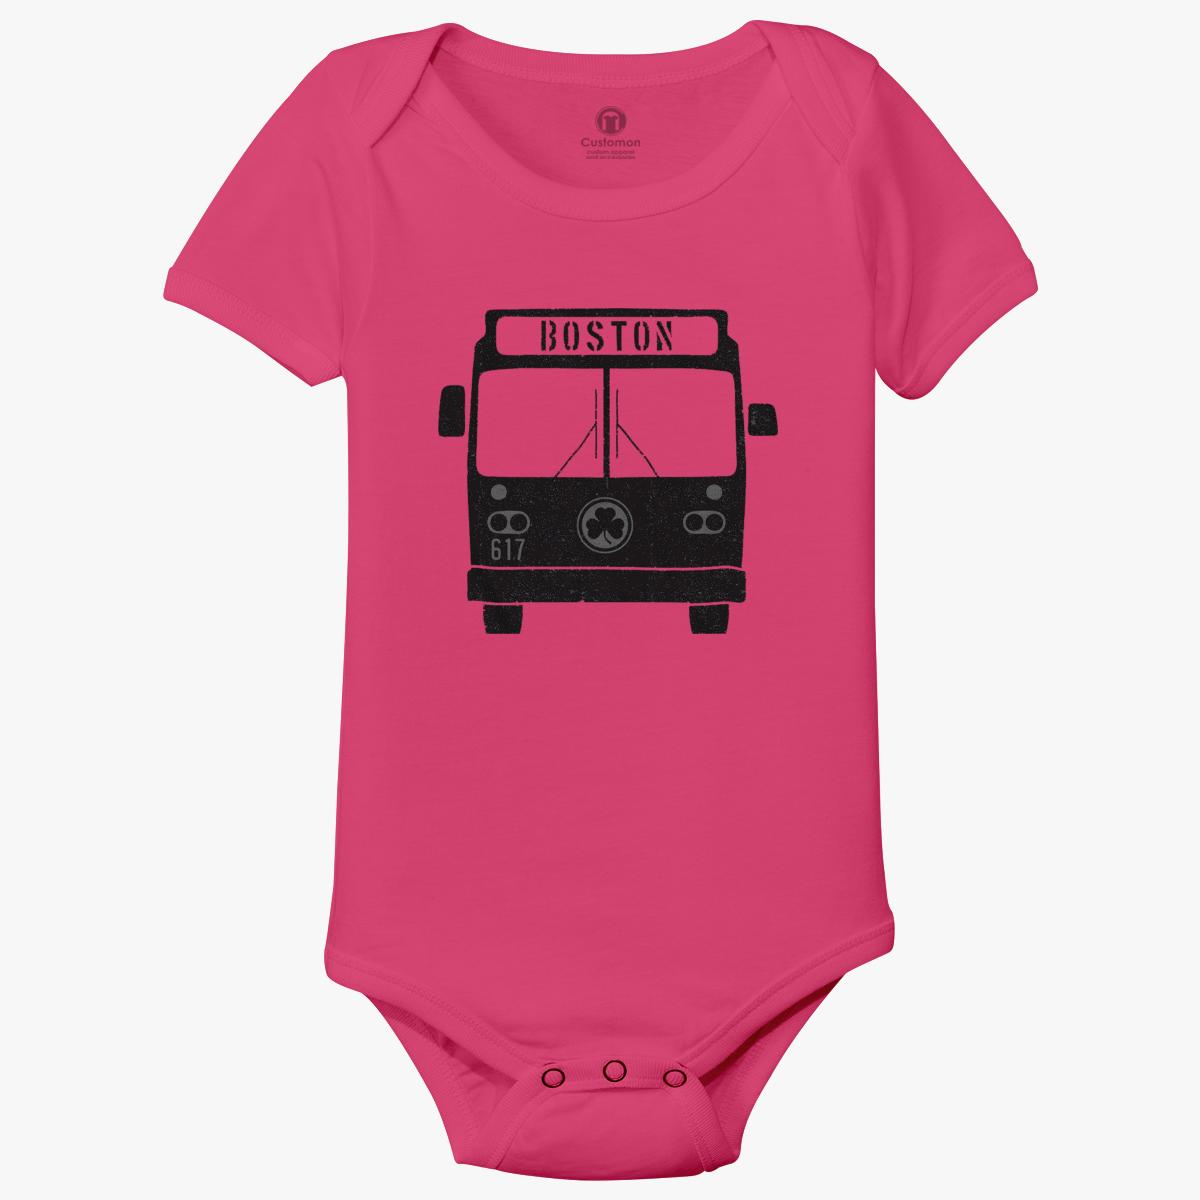 774c9912b Boston or Bussed Baby Onesies – kidozi